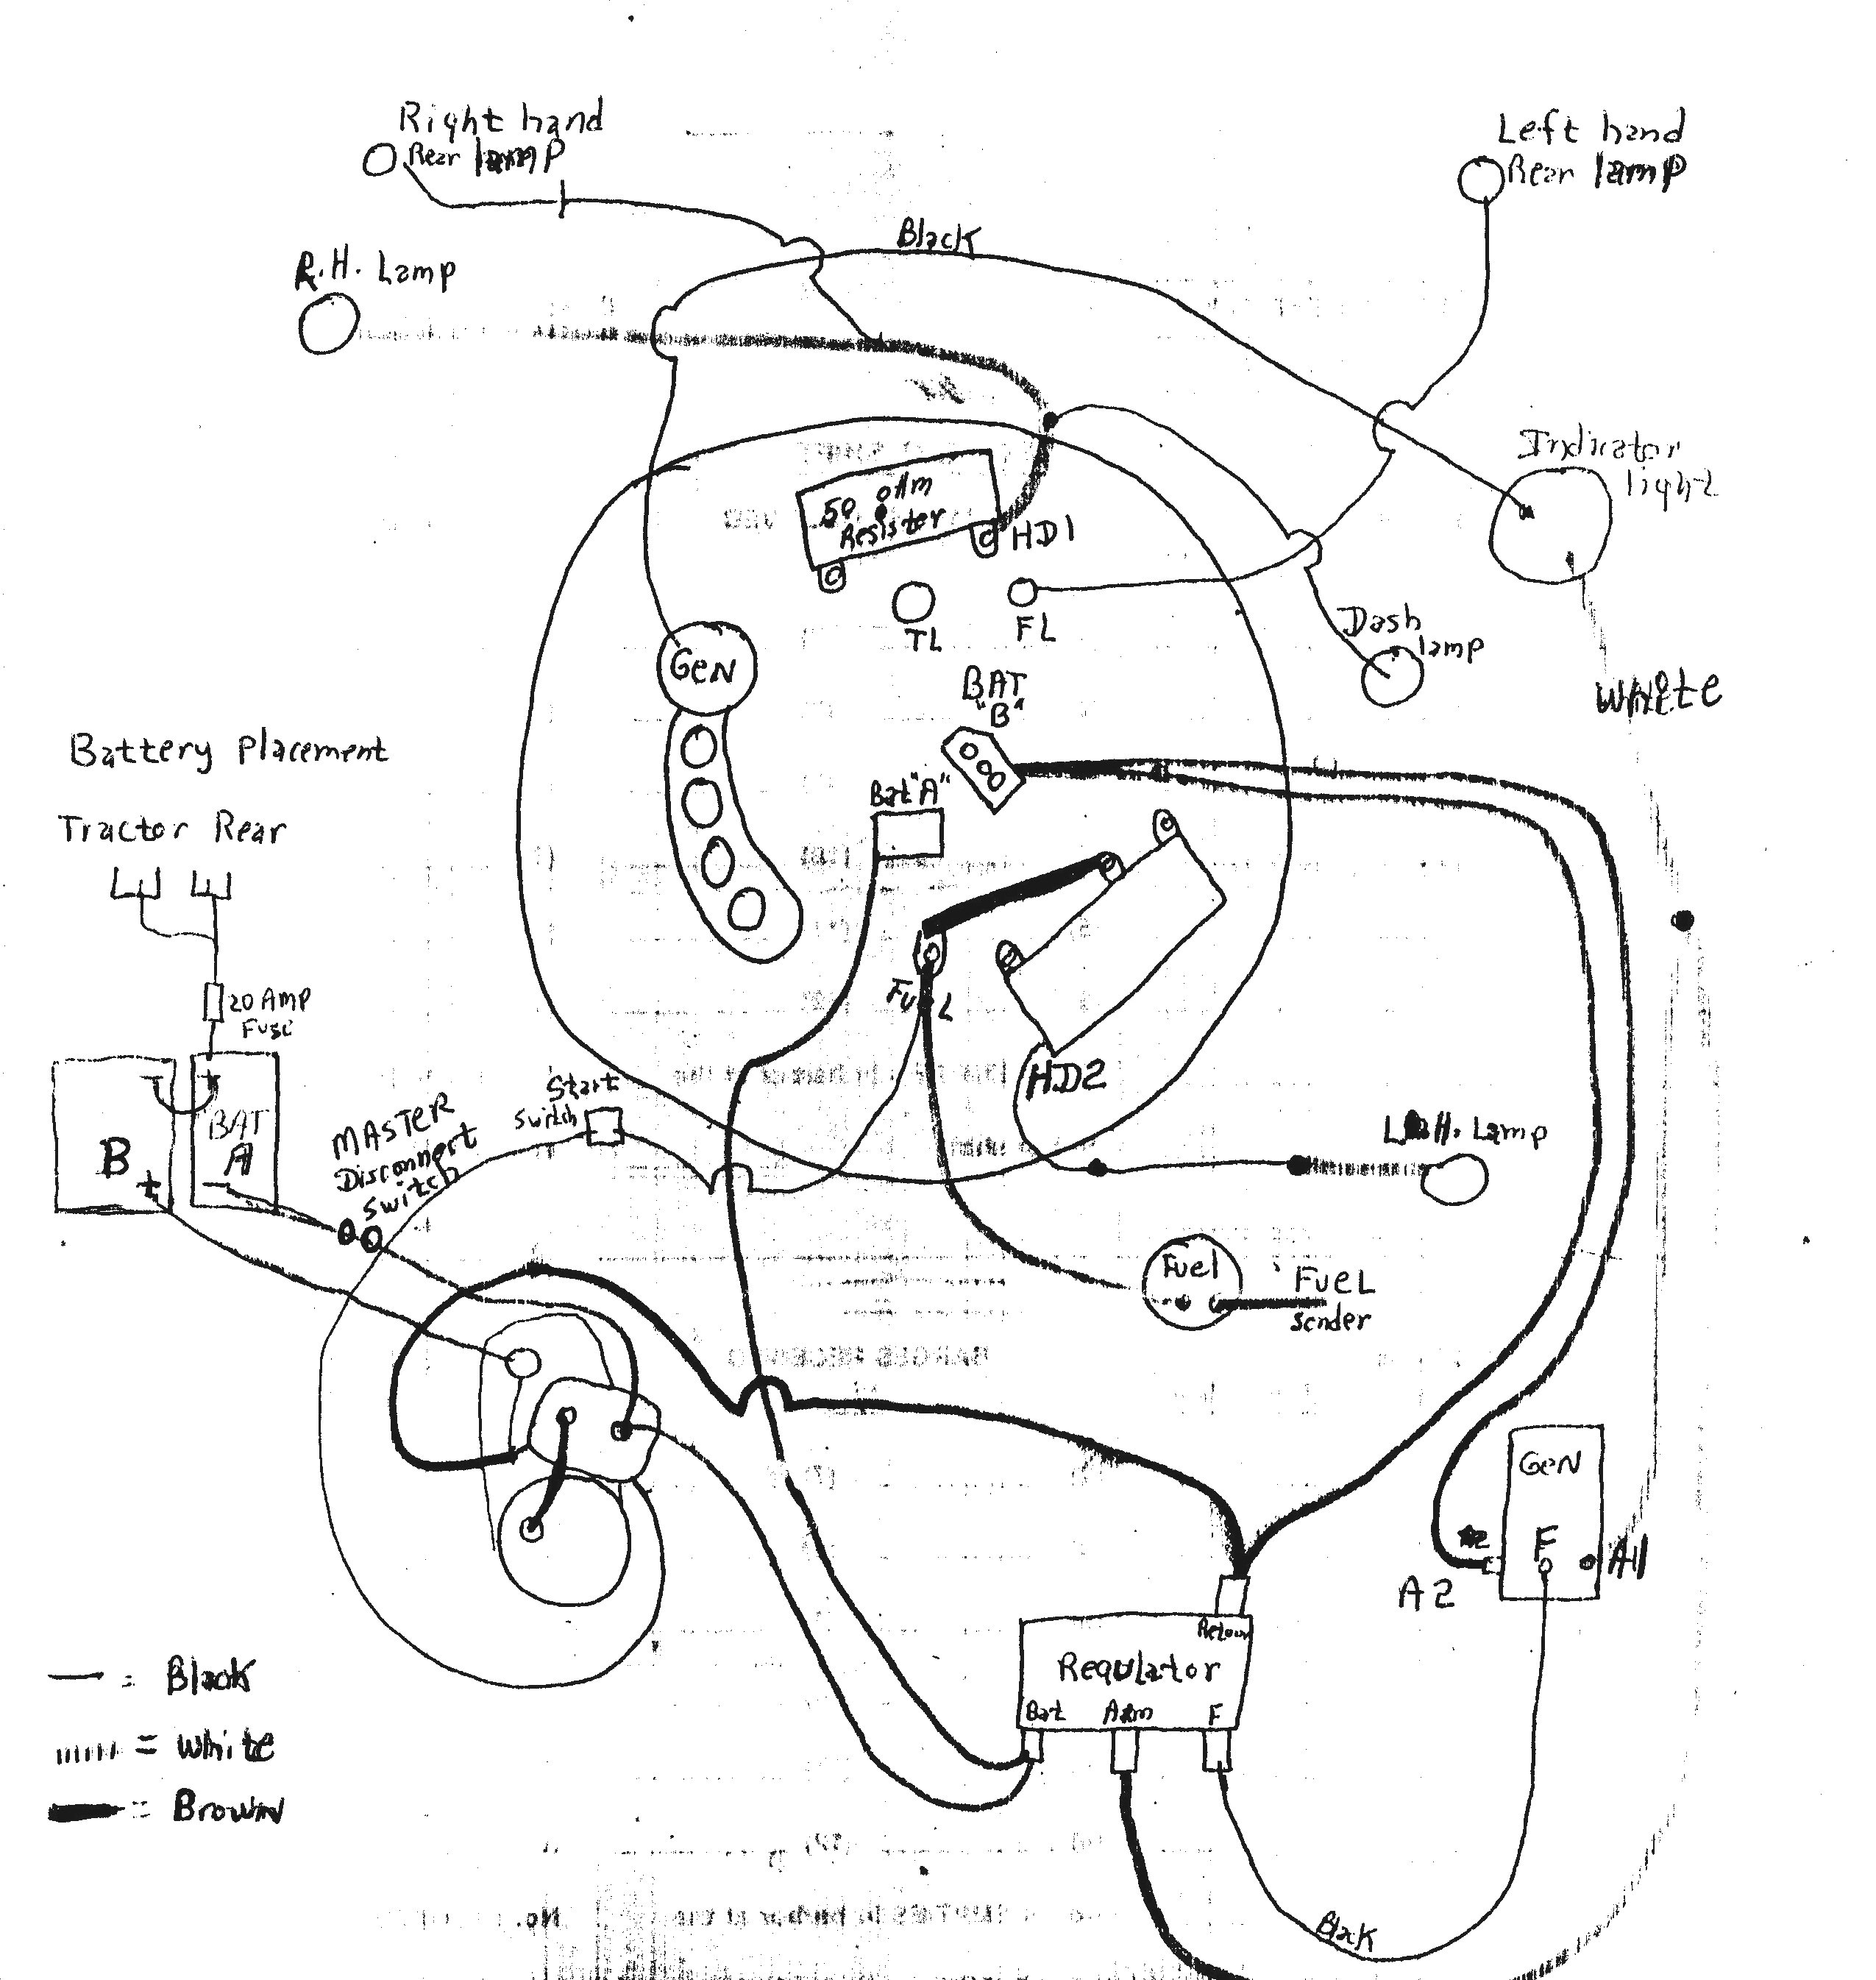 24volt_wiring_diagram the john deere 24 volt electrical system explained john deere 4430 wiring diagram at bayanpartner.co